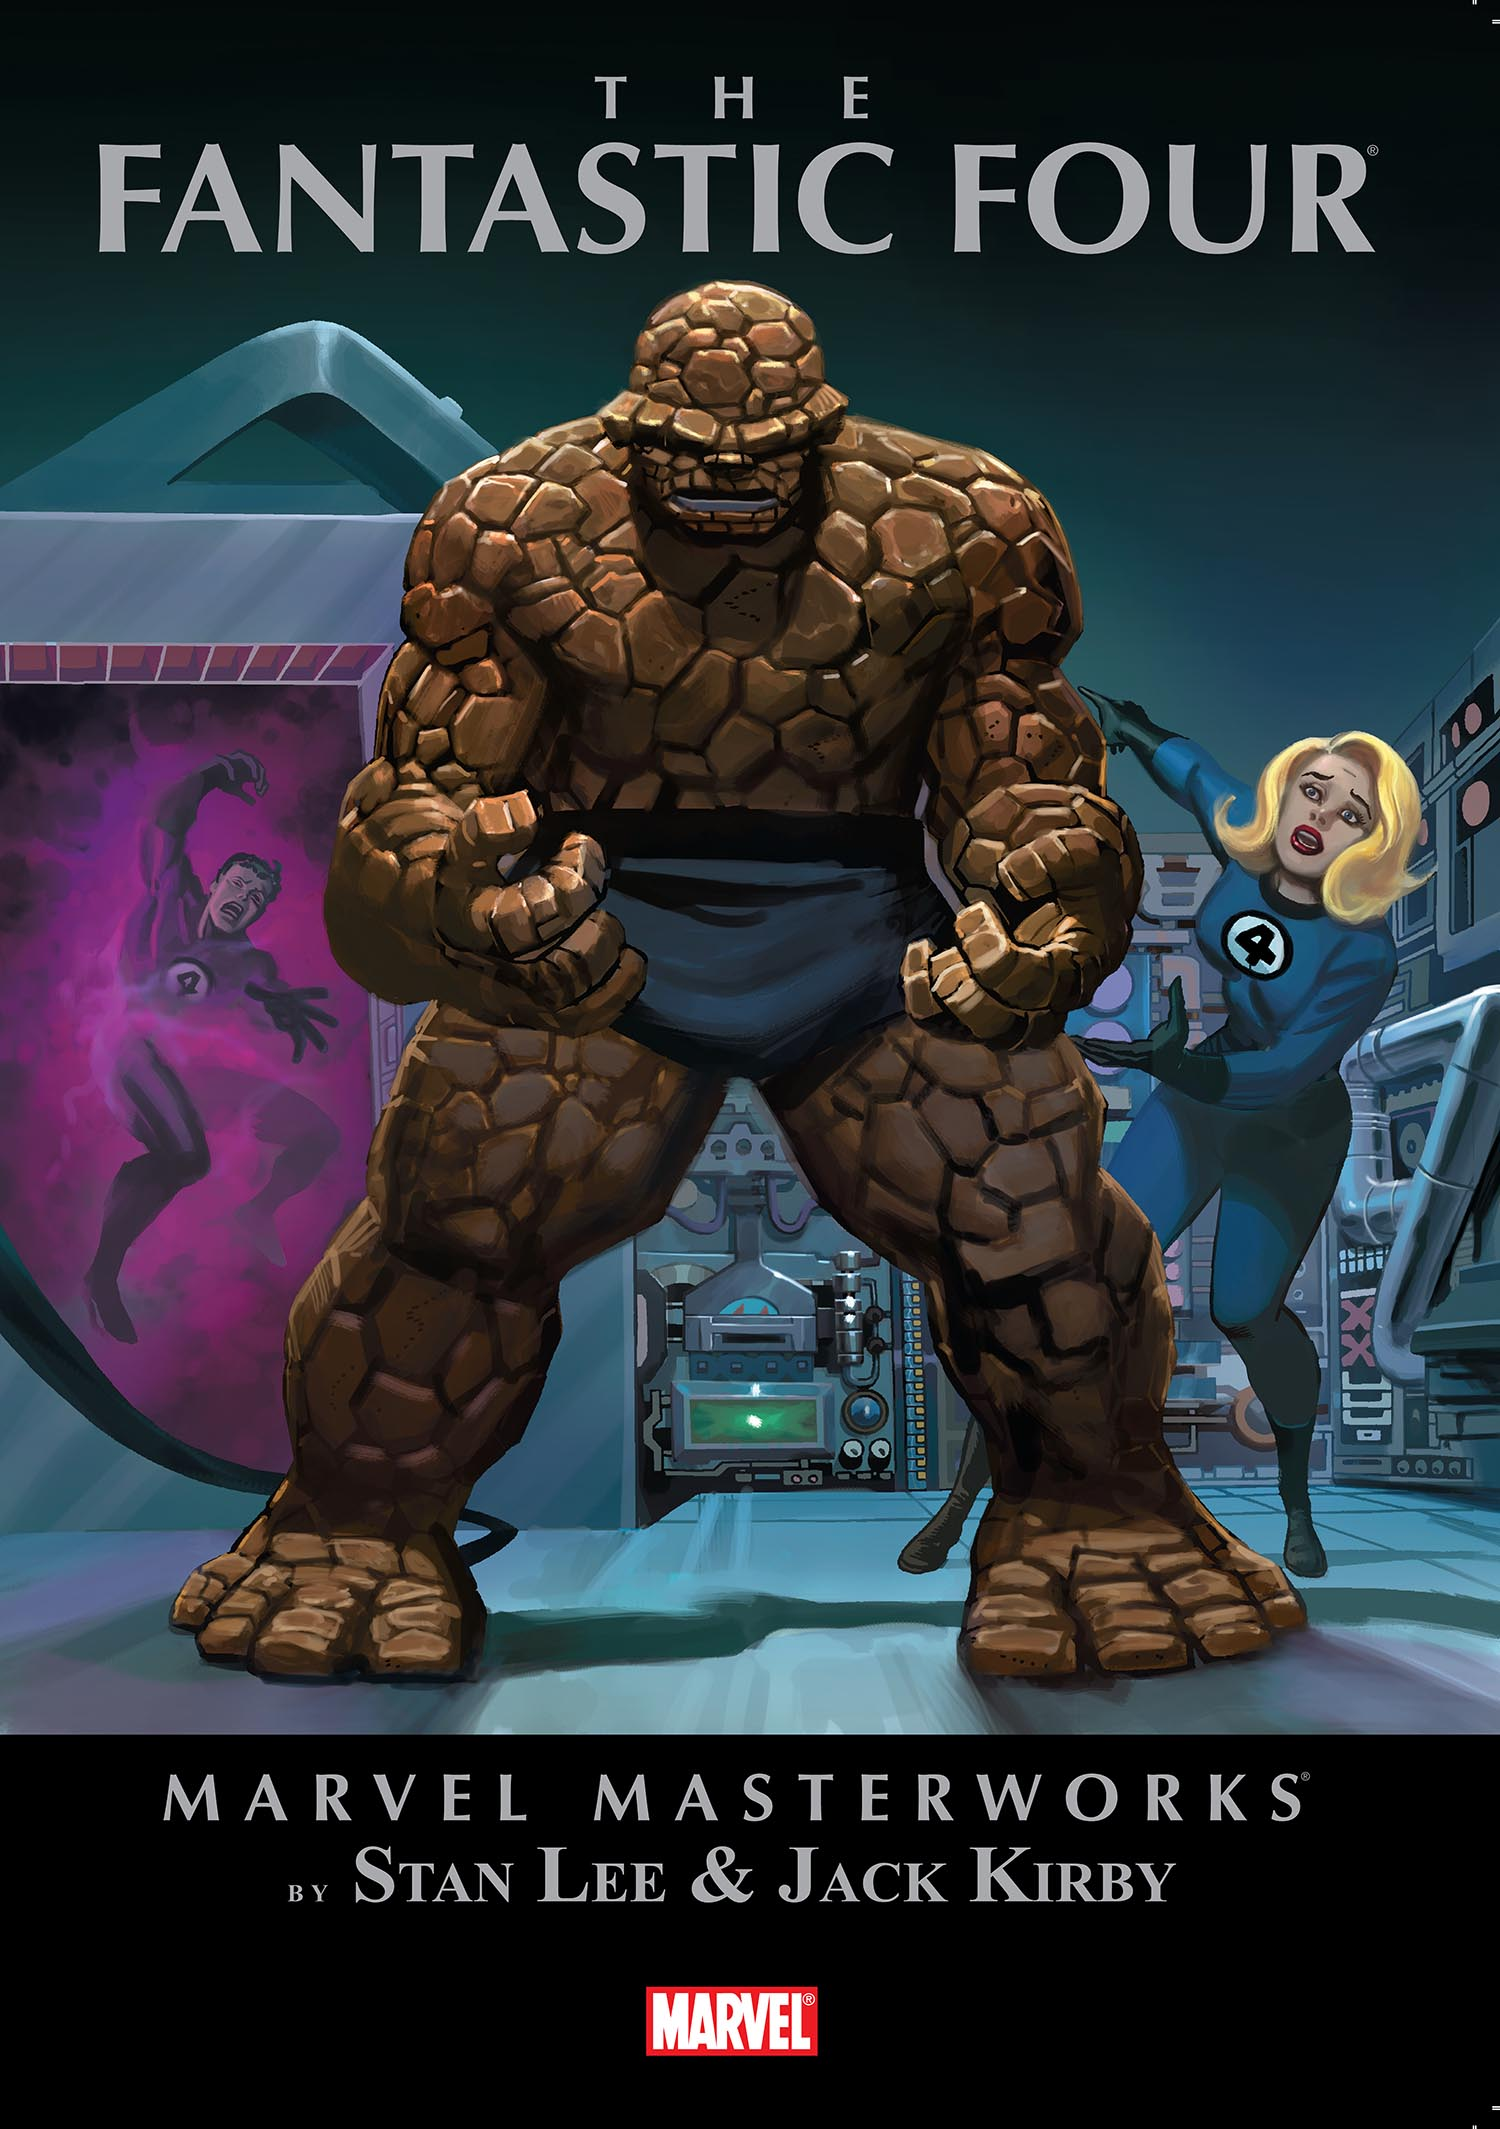 Marvel Masterworks: The Fantastic Four Vol. 6 (Hardcover)